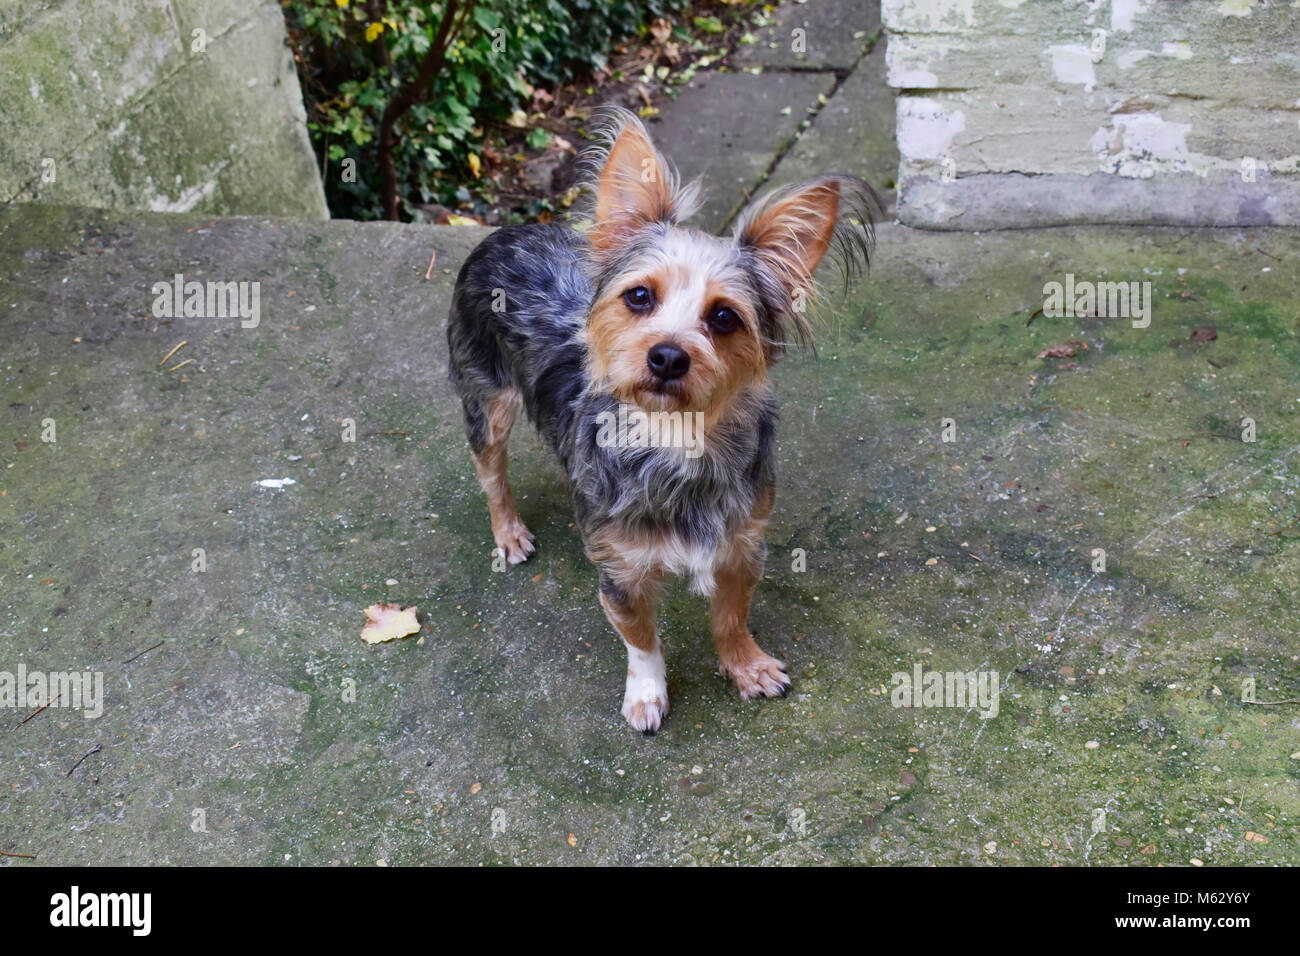 Chihuahua Terrier Mixed Breed Stock Photos & Chihuahua Terrier Mixed ...